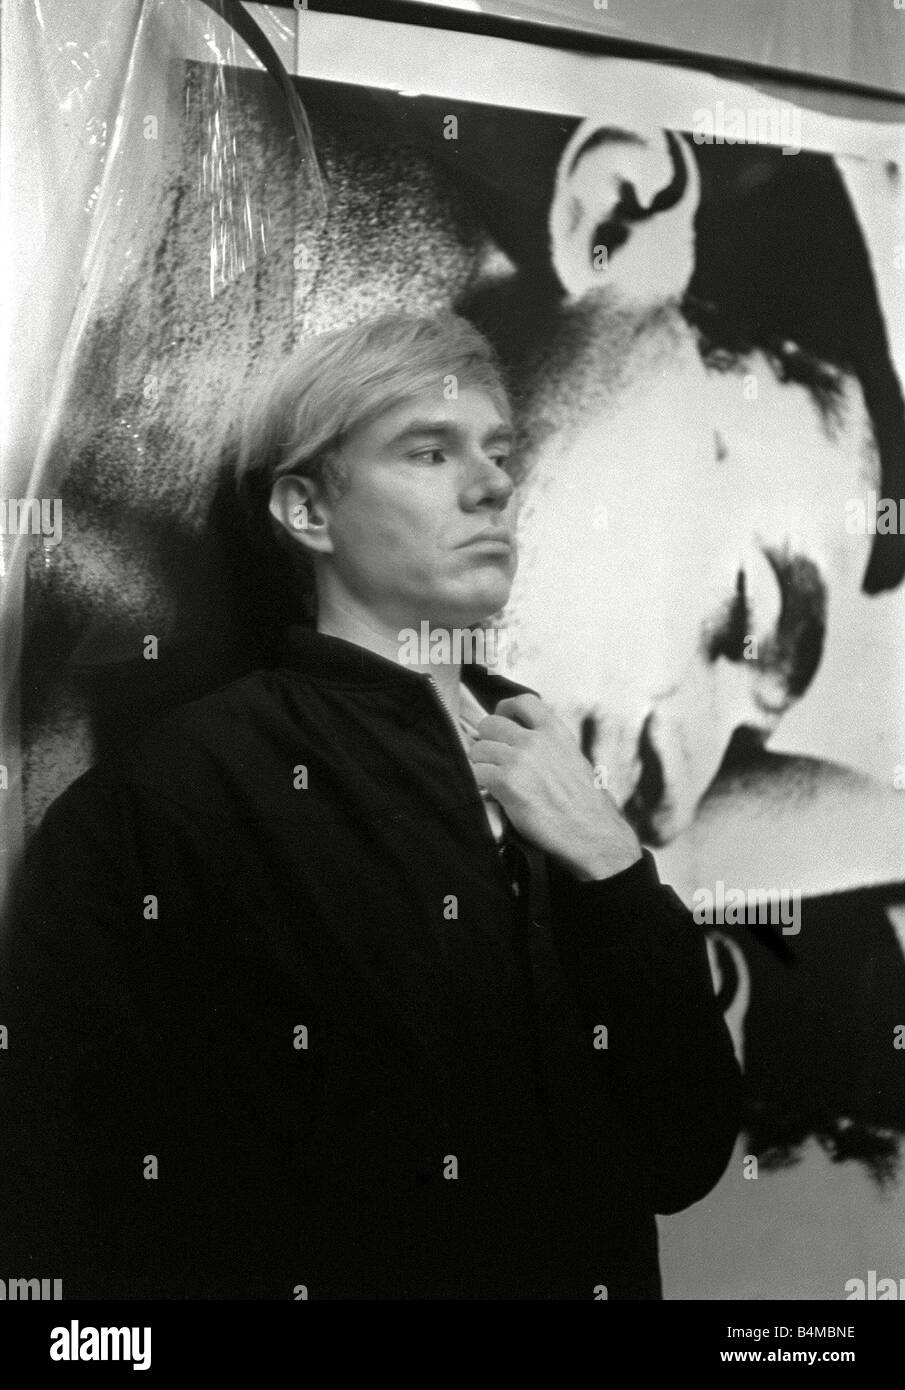 Andy Warhol Film maker leader of the Pop Art Underground in his studio In front of one of his prints 1965 - Stock Image